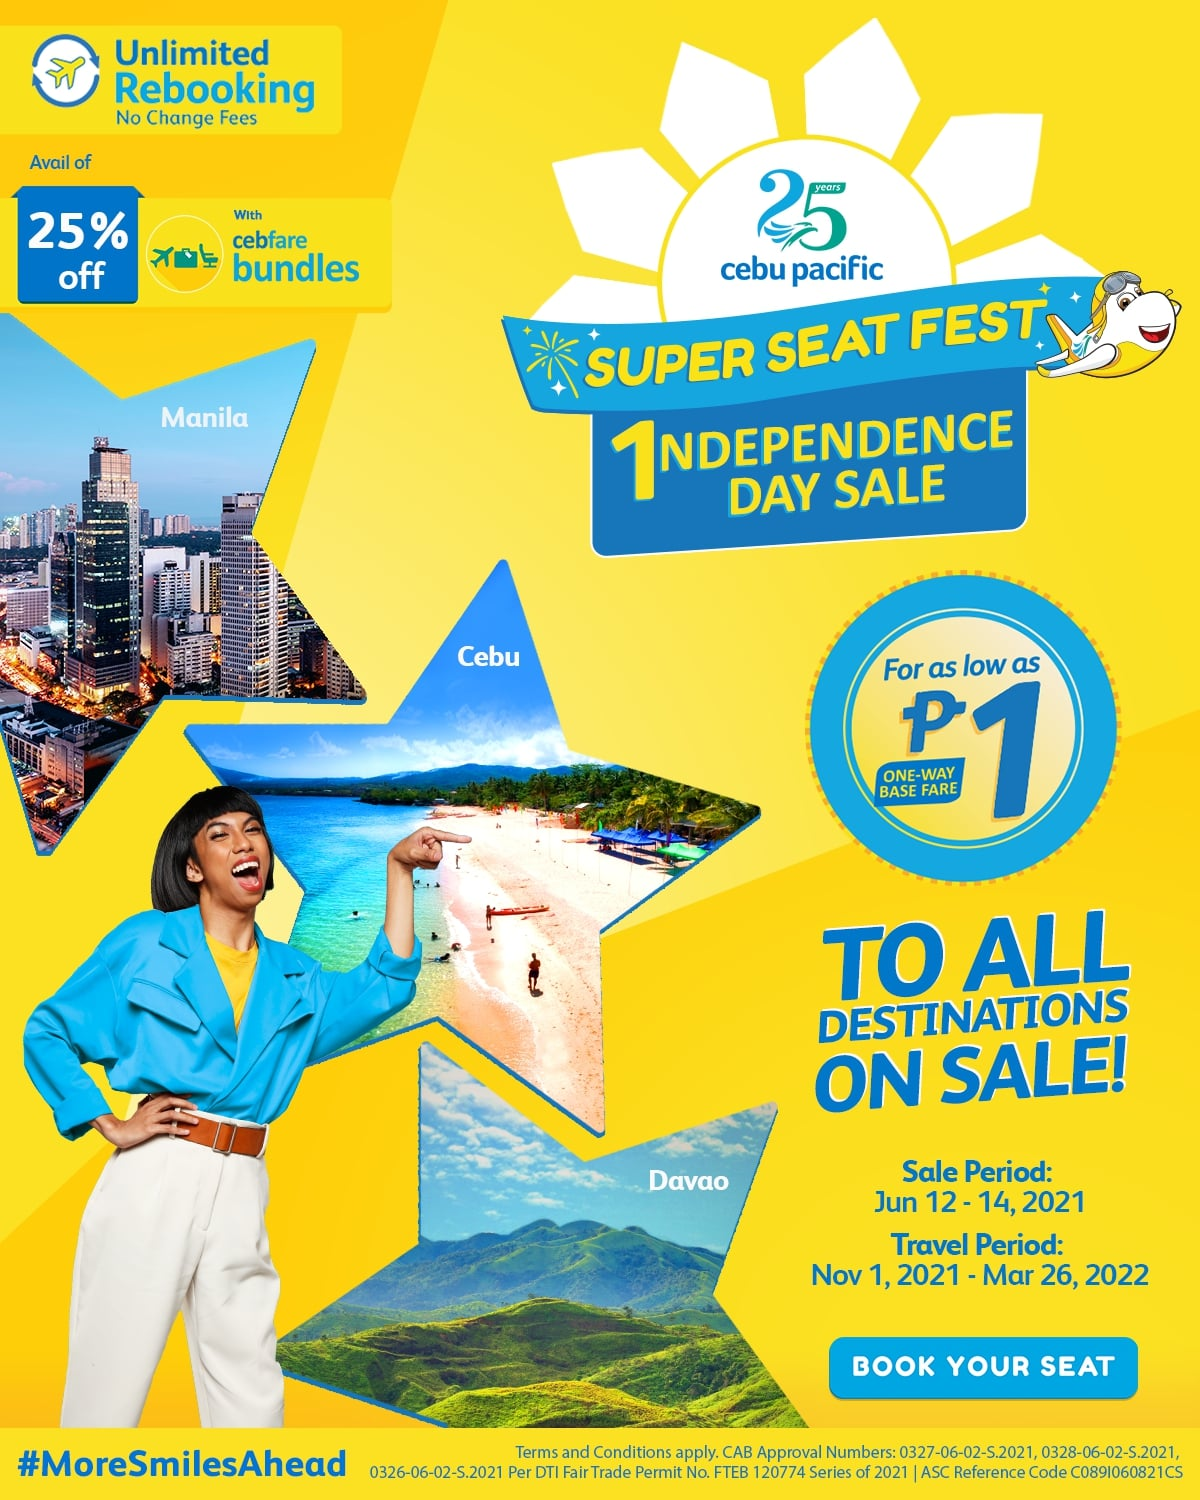 Cebu Pacific launches trademark PISO sale this 1ndependence day